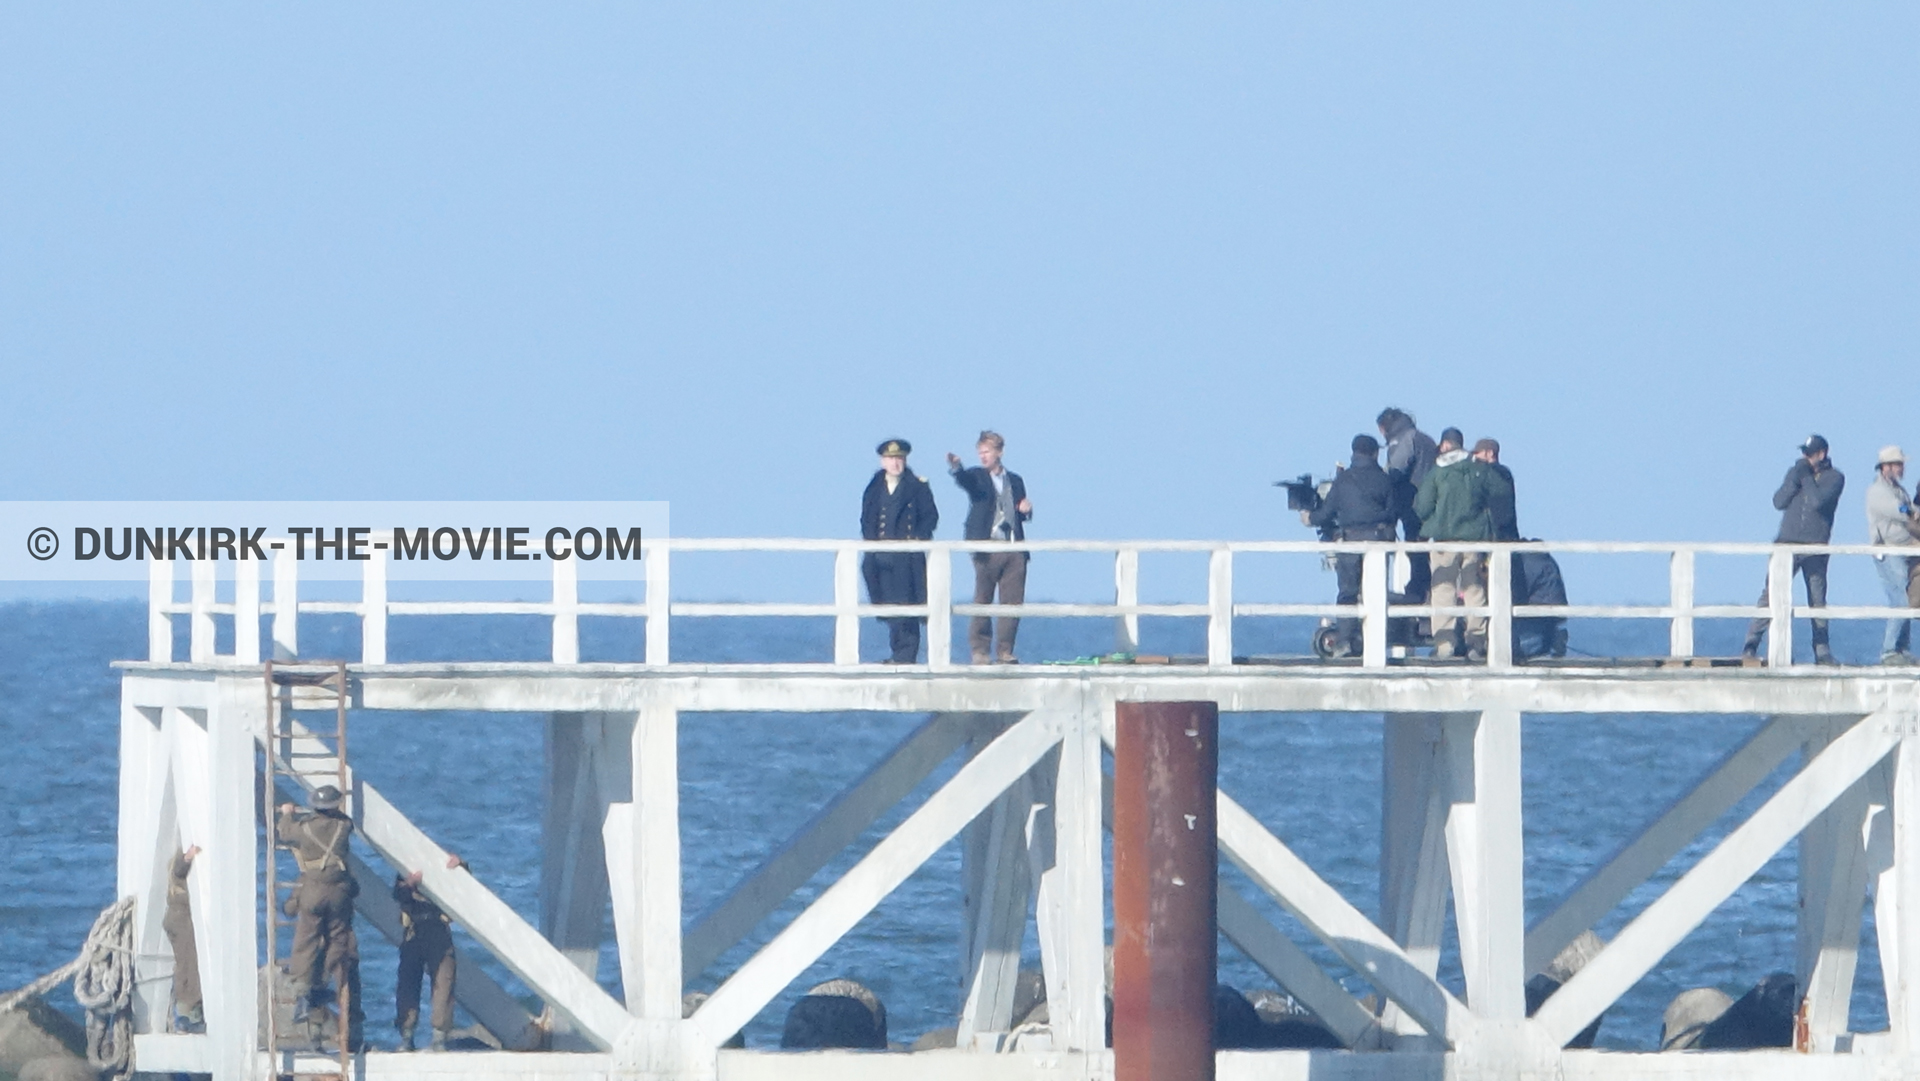 Picture with blue sky, Hoyte van Hoytema, EST pier, Kenneth Branagh, calm sea, Christopher Nolan, technical team,  from behind the scene of the Dunkirk movie by Nolan